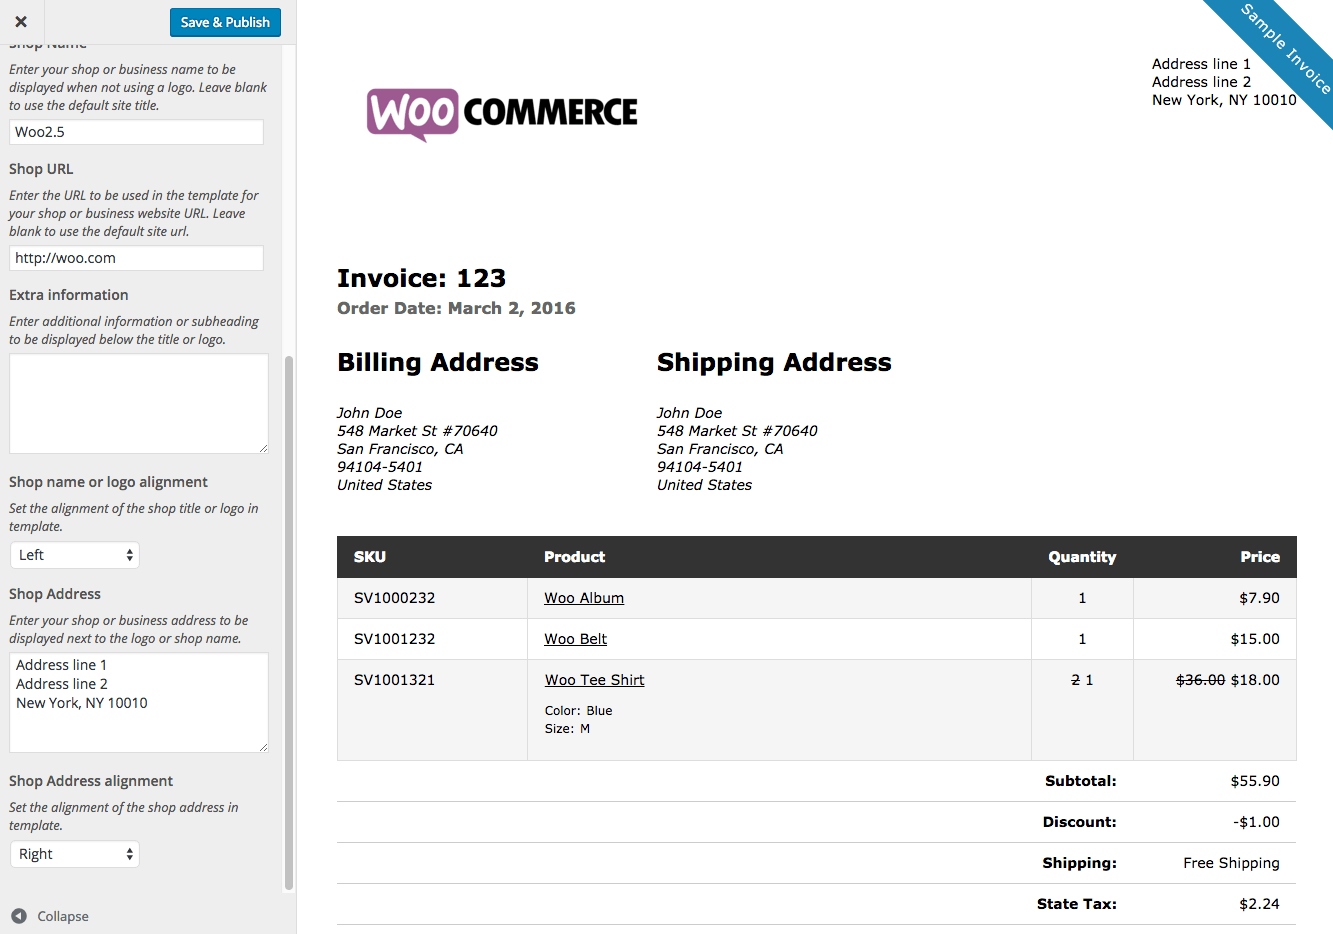 Usdgus  Winsome Print Invoices Amp Packing Lists  Woocommerce With Exciting Woocommerce Print Invoices  Packing Lists Customizer With Captivating Invoice And Purchase Order Also Billing Invoice Software In Addition Invoice App Android And Vat Invoicing As Well As Invoices Printing Additionally What Is Invoice Price Vs Msrp From Woocommercecom With Usdgus  Exciting Print Invoices Amp Packing Lists  Woocommerce With Captivating Woocommerce Print Invoices  Packing Lists Customizer And Winsome Invoice And Purchase Order Also Billing Invoice Software In Addition Invoice App Android From Woocommercecom